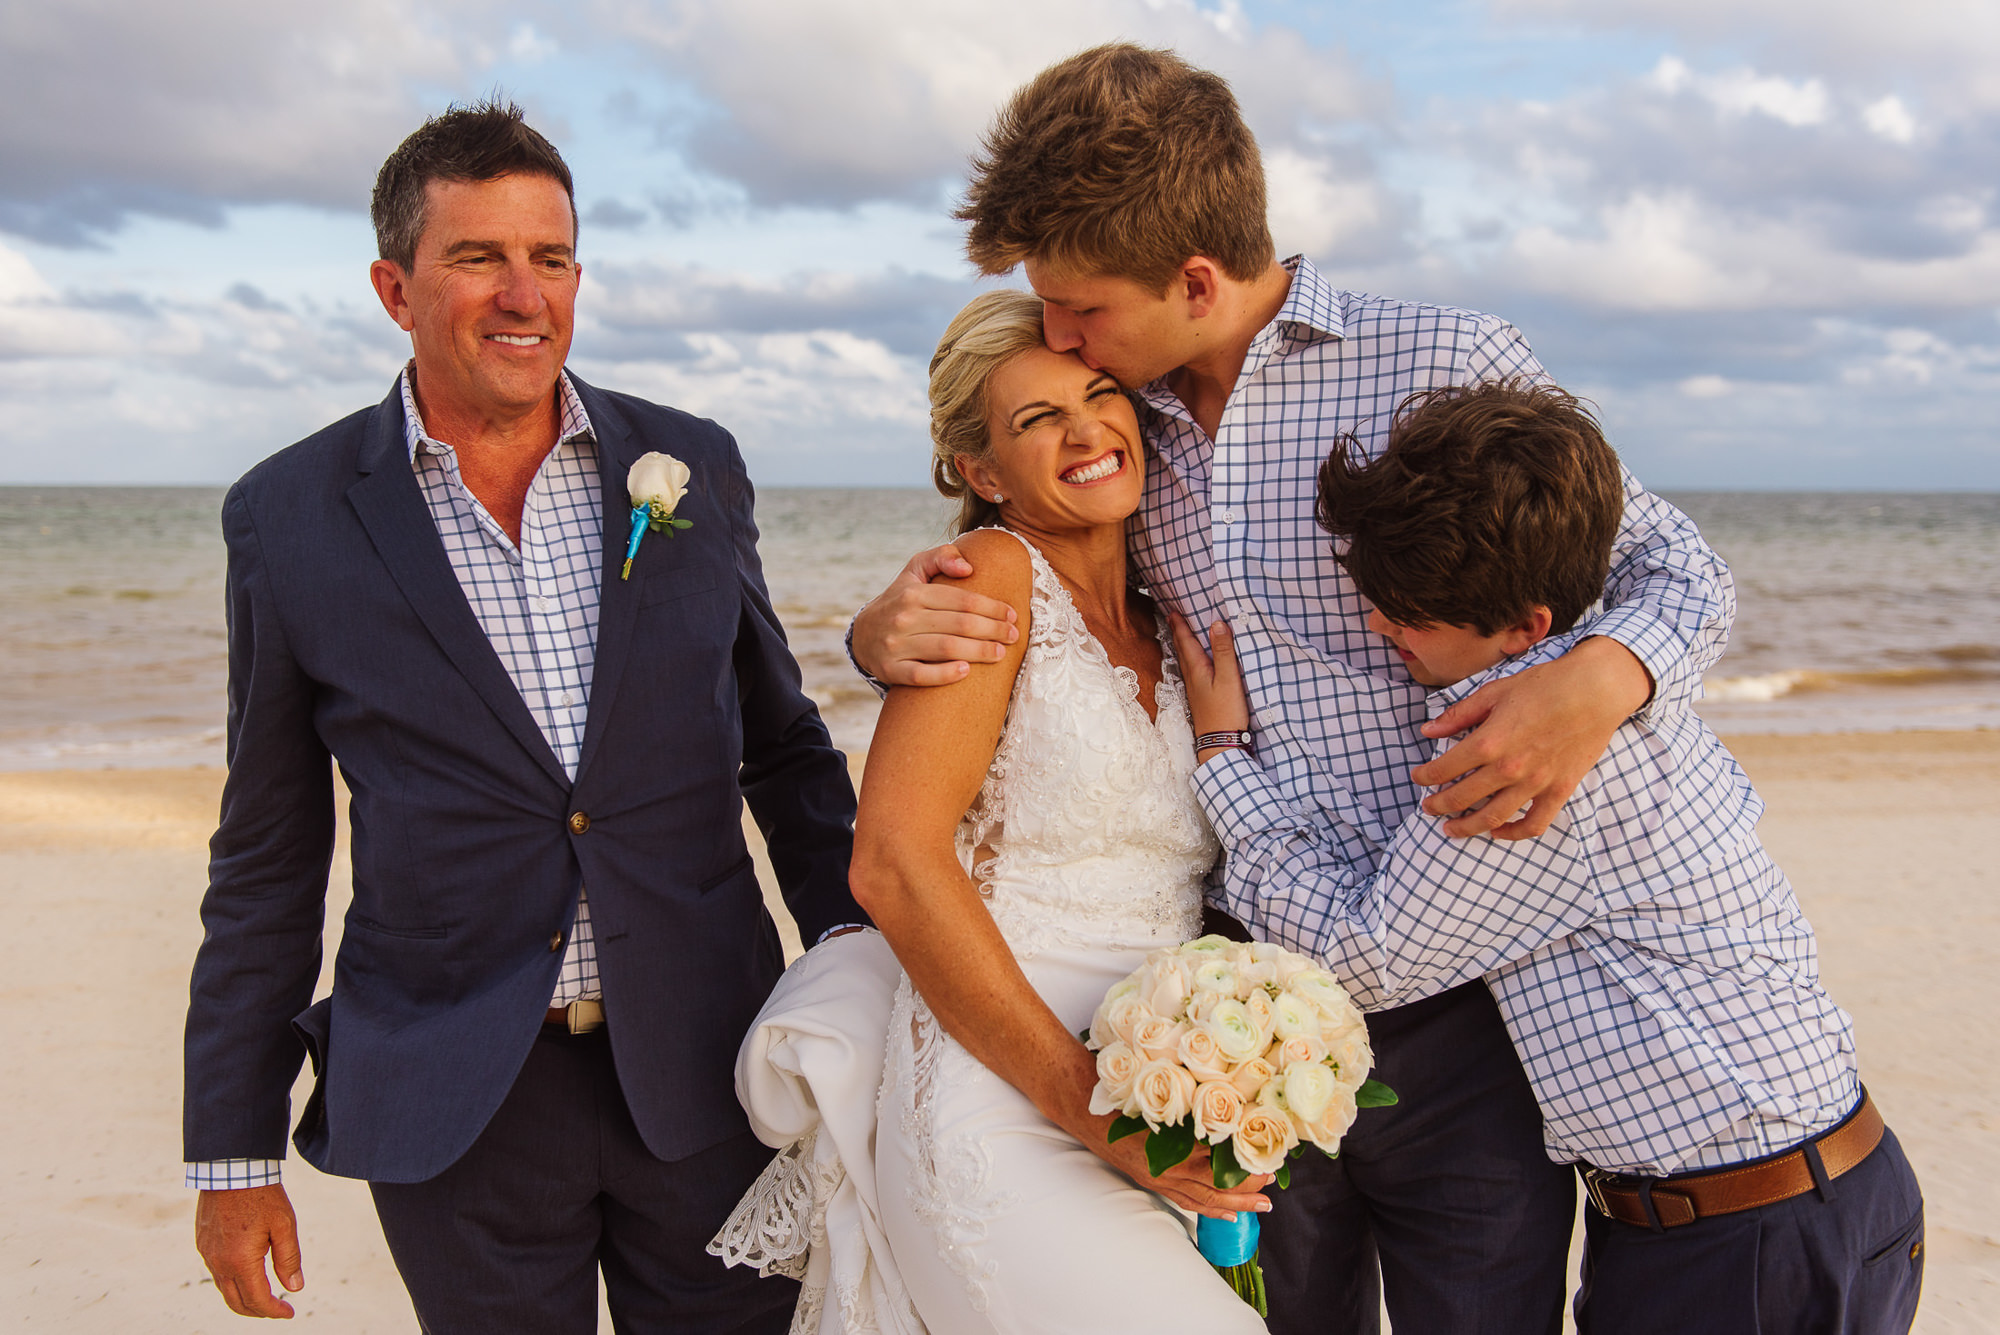 Bride's stepsons give her a kiss after ceremony, by Citlalli Rico